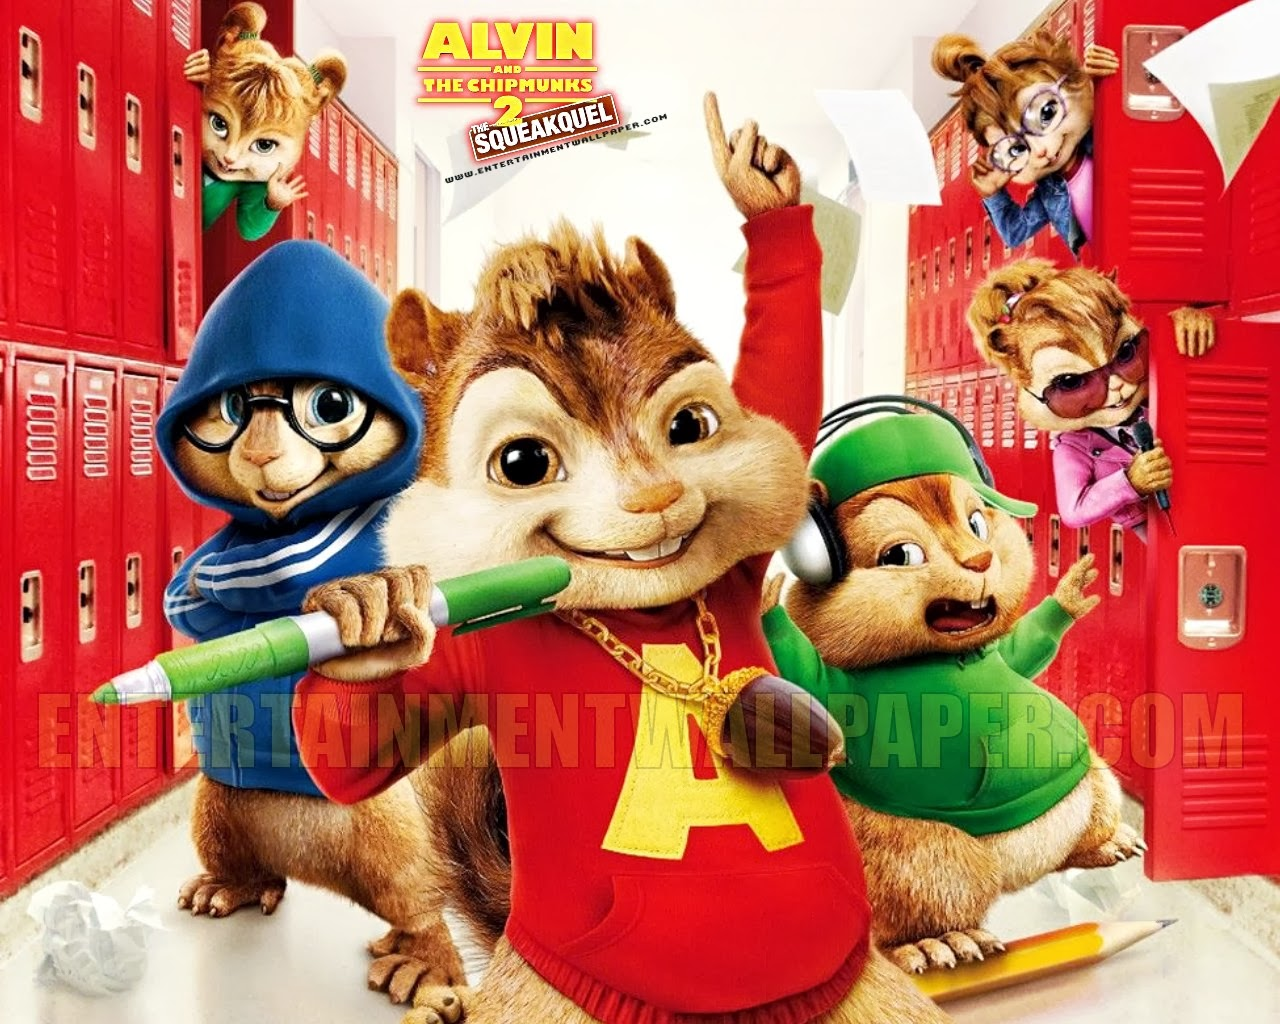 Best Cartoon 4 U Alvin And The Chipmunks Hd Wallpaper